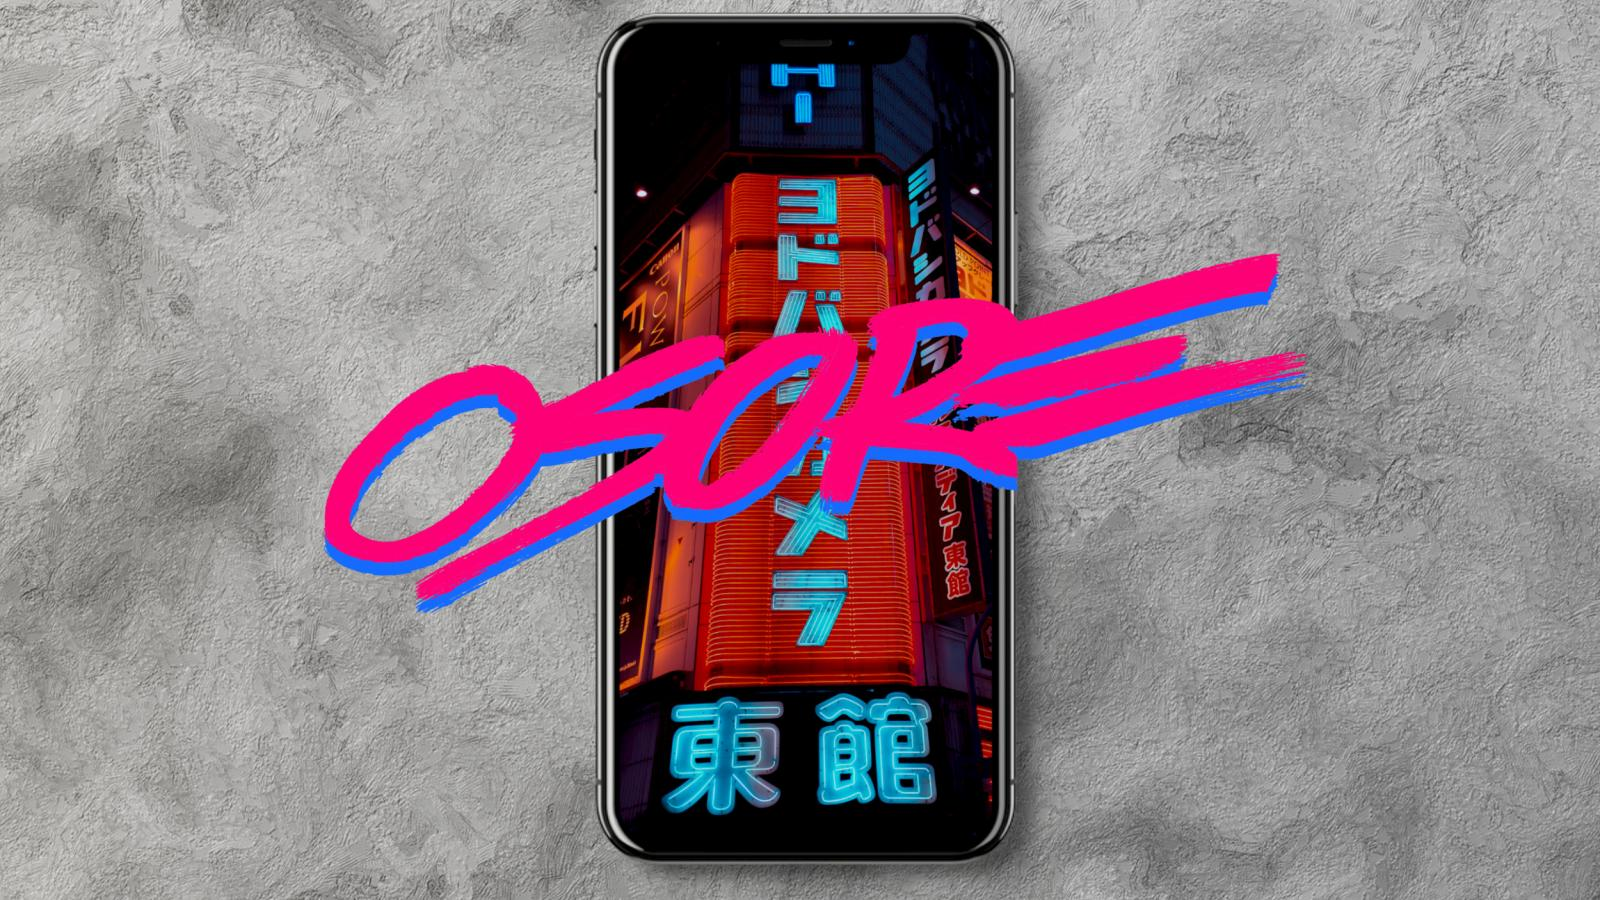 Osore Update for mobile, next series - Cyberpunk Lightroom Presets